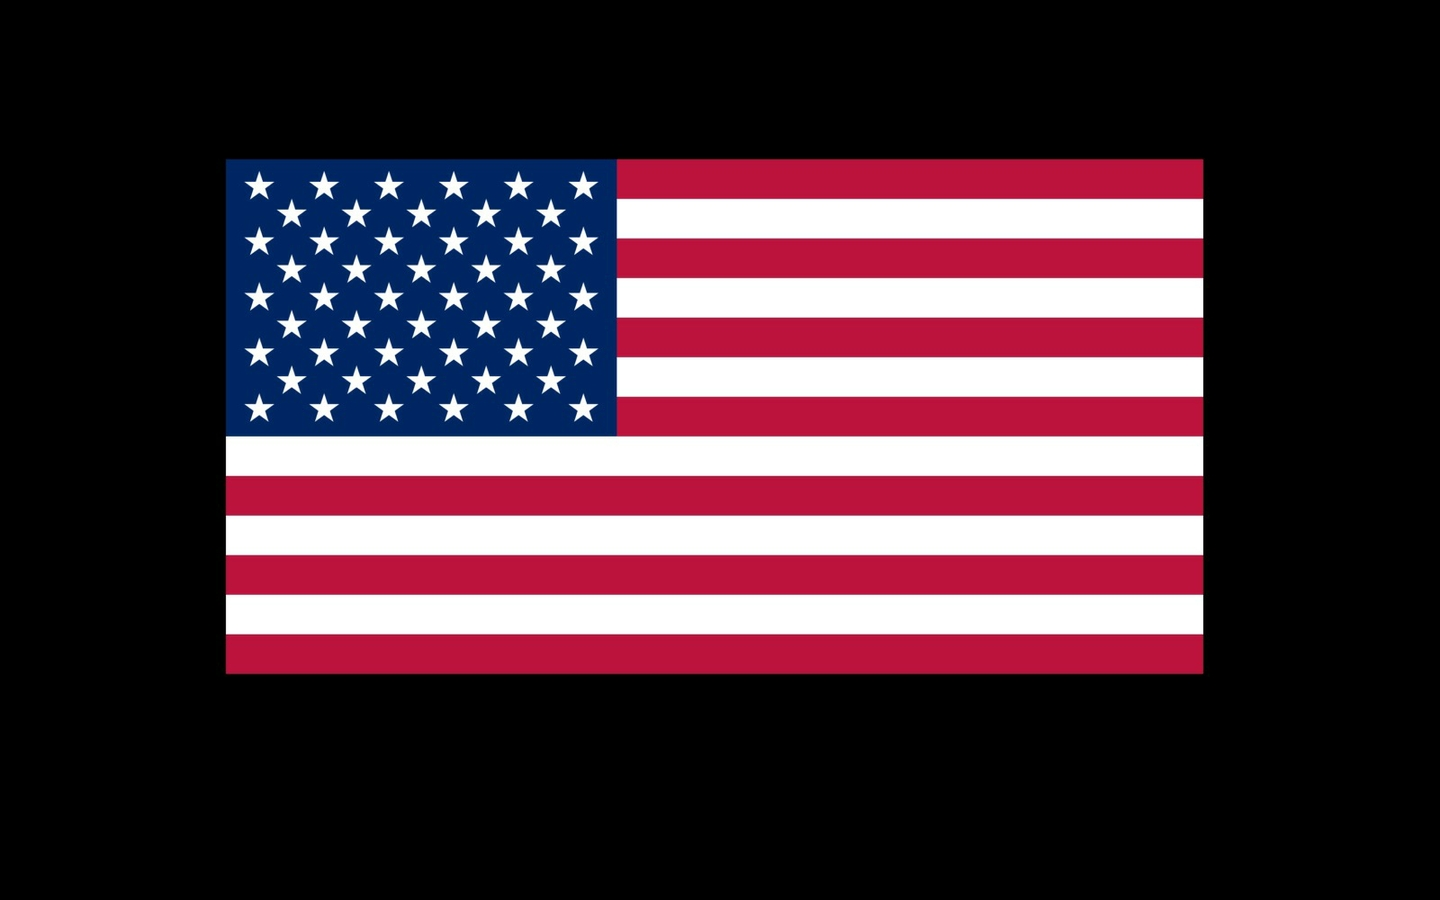 Flag USA Wallpaper Image Picture